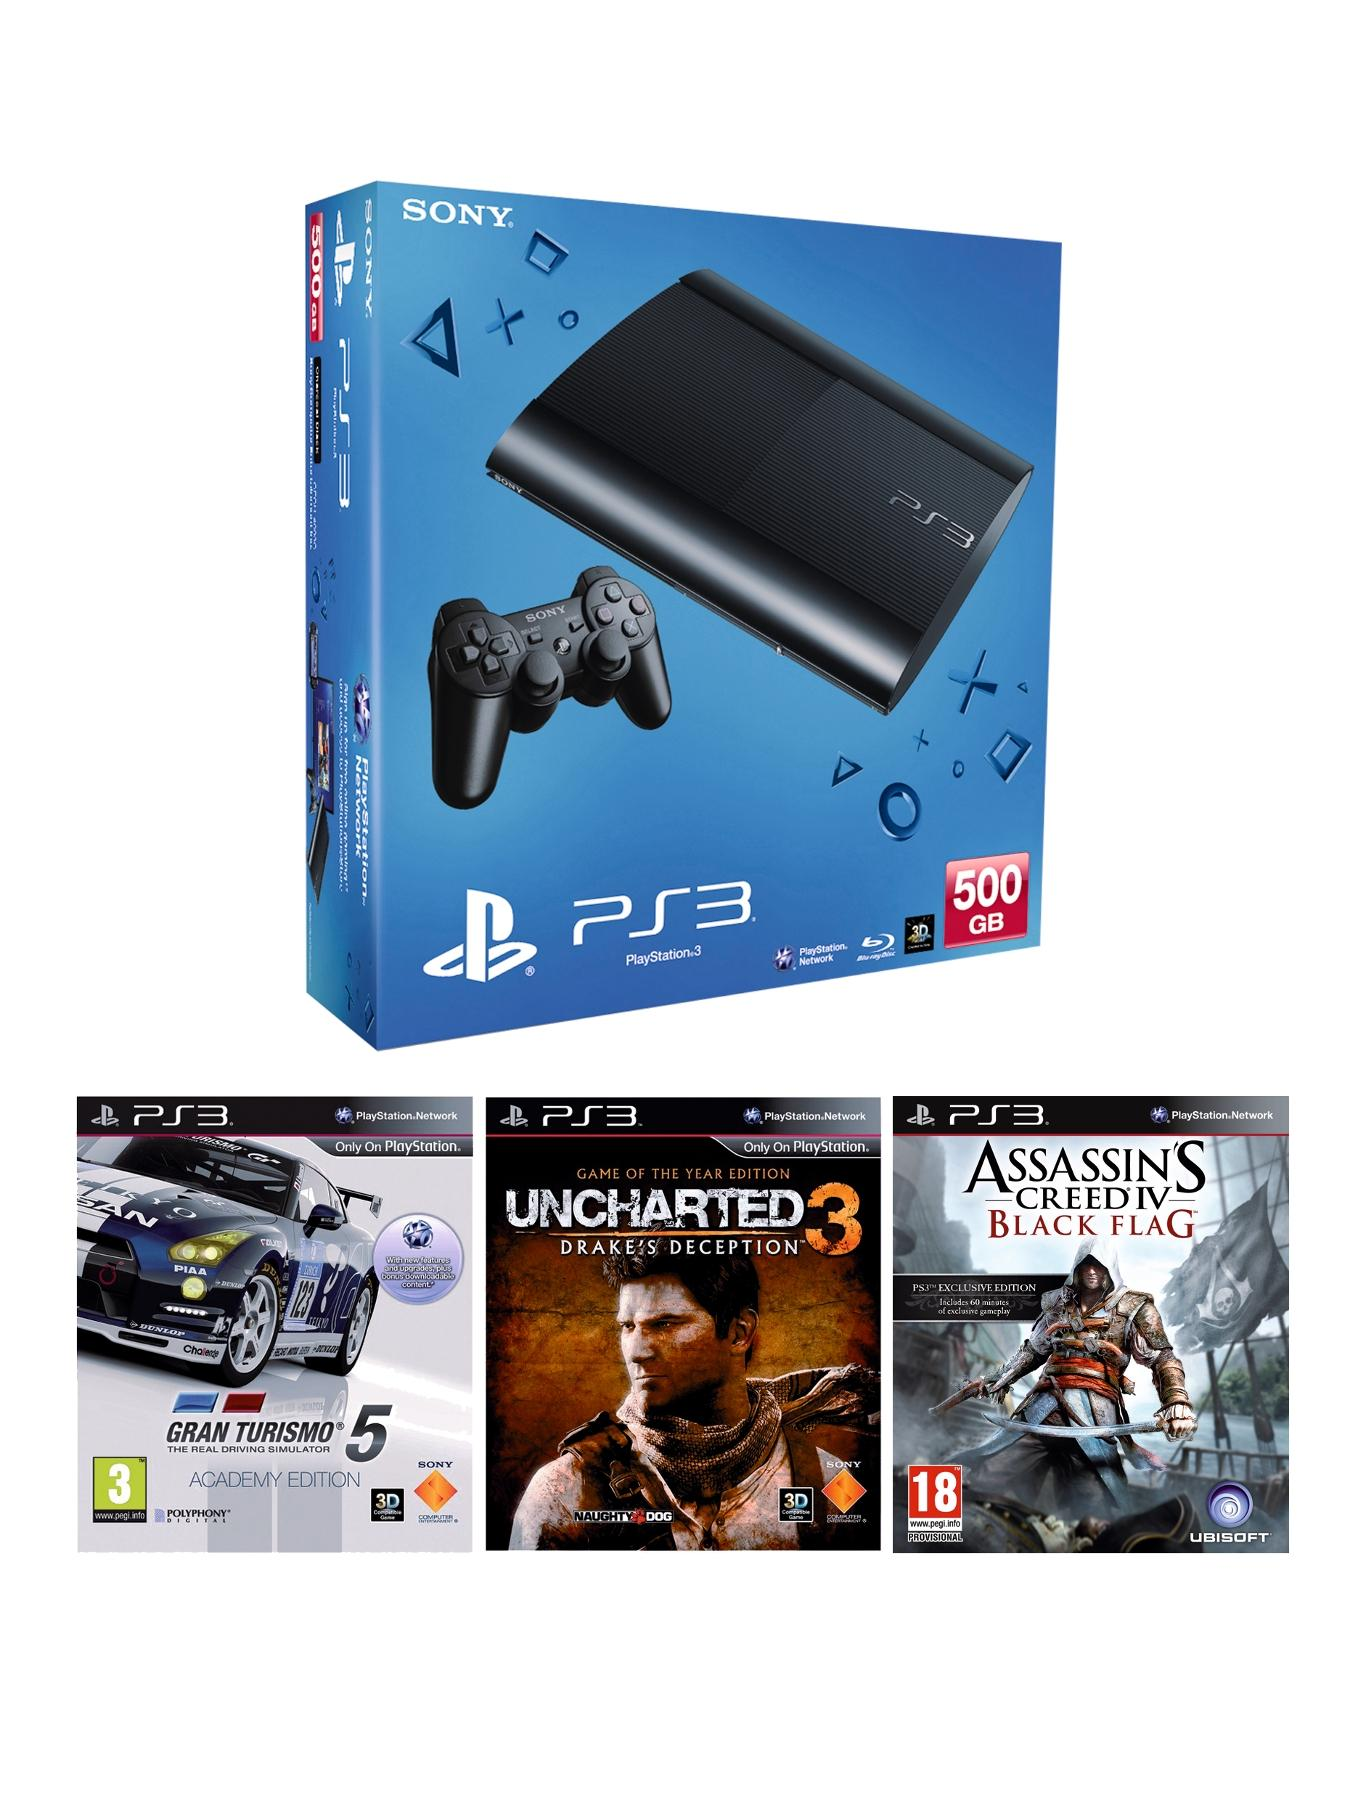 Playstation 3 500Gb Console with Gran Turismo 5, Uncharted 3 and Assassins Creed IV: Black Flag